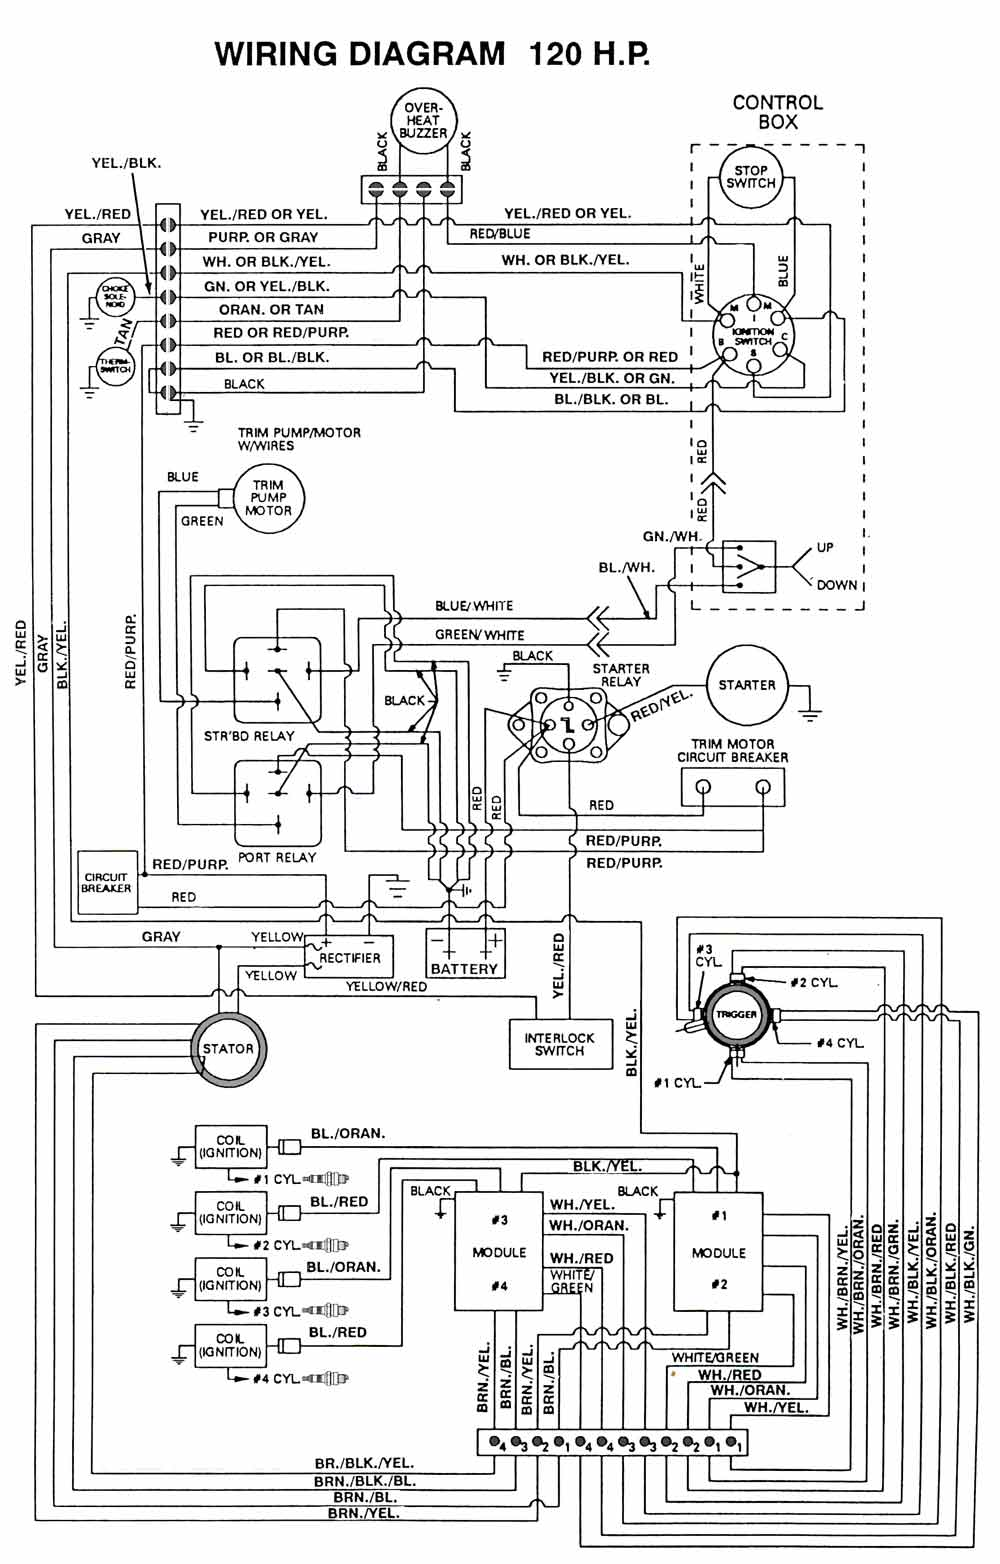 medium resolution of chrysler marine wiring diagram blog wiring diagram 318 chrysler marine engine wiring diagram 85 chrysler marine